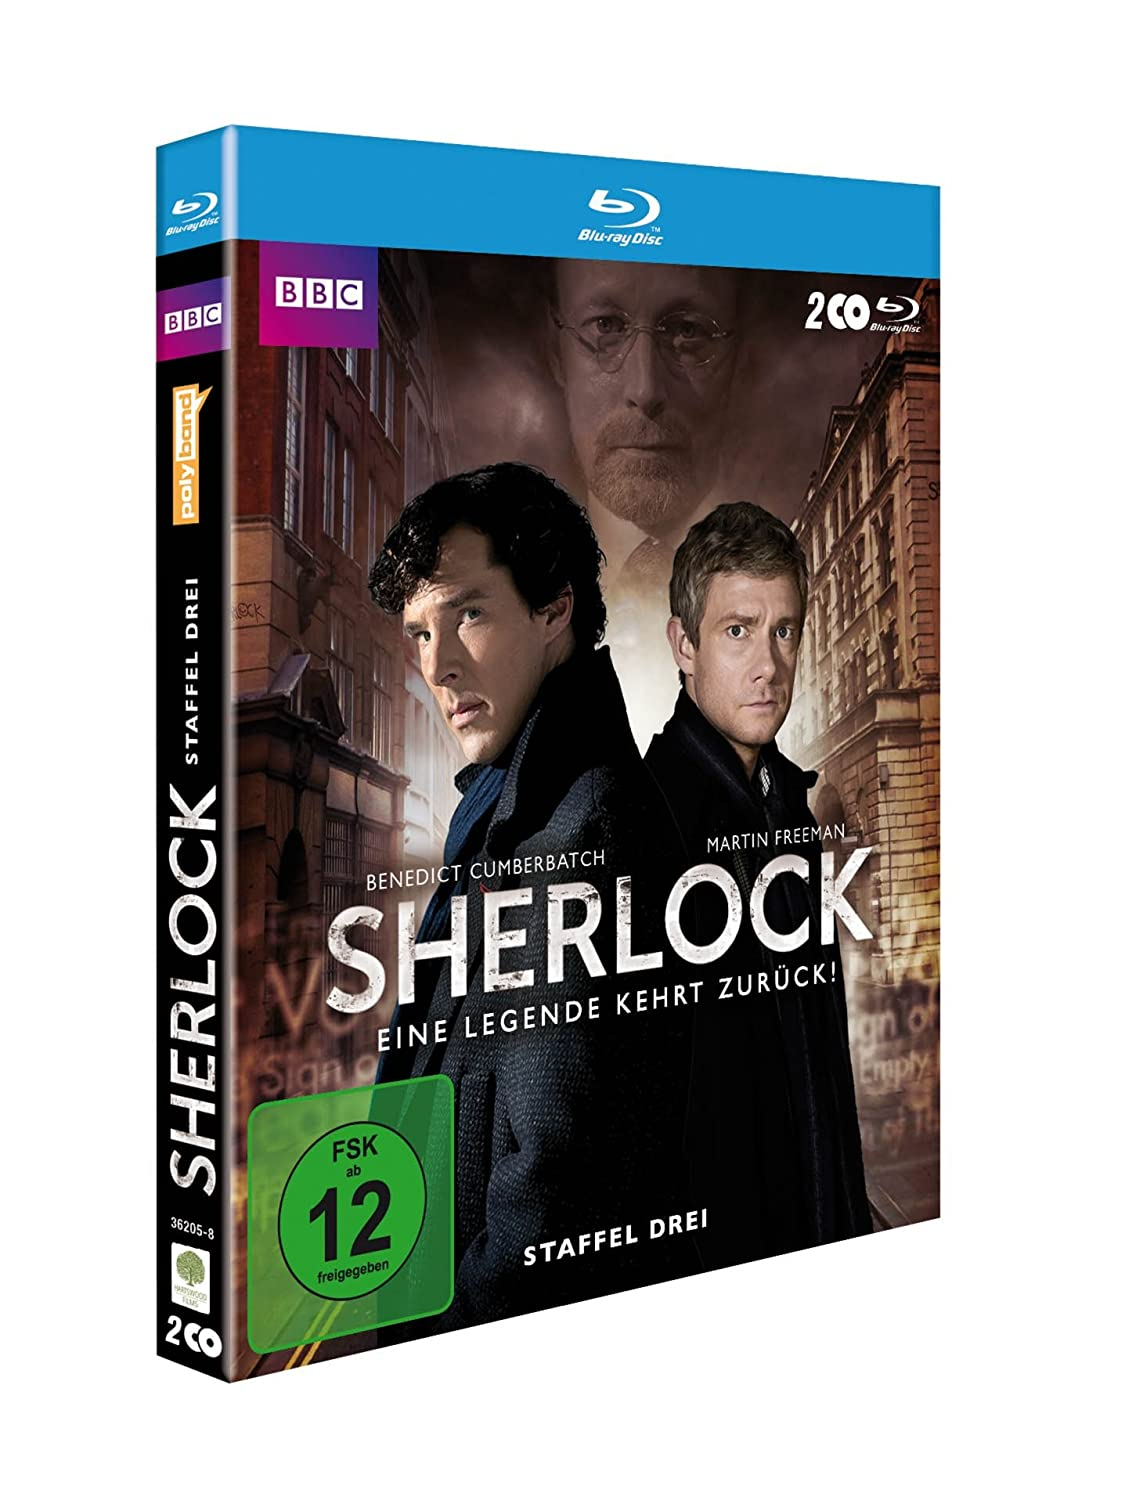 Sherlock Staffel 3 Blu-ray Box